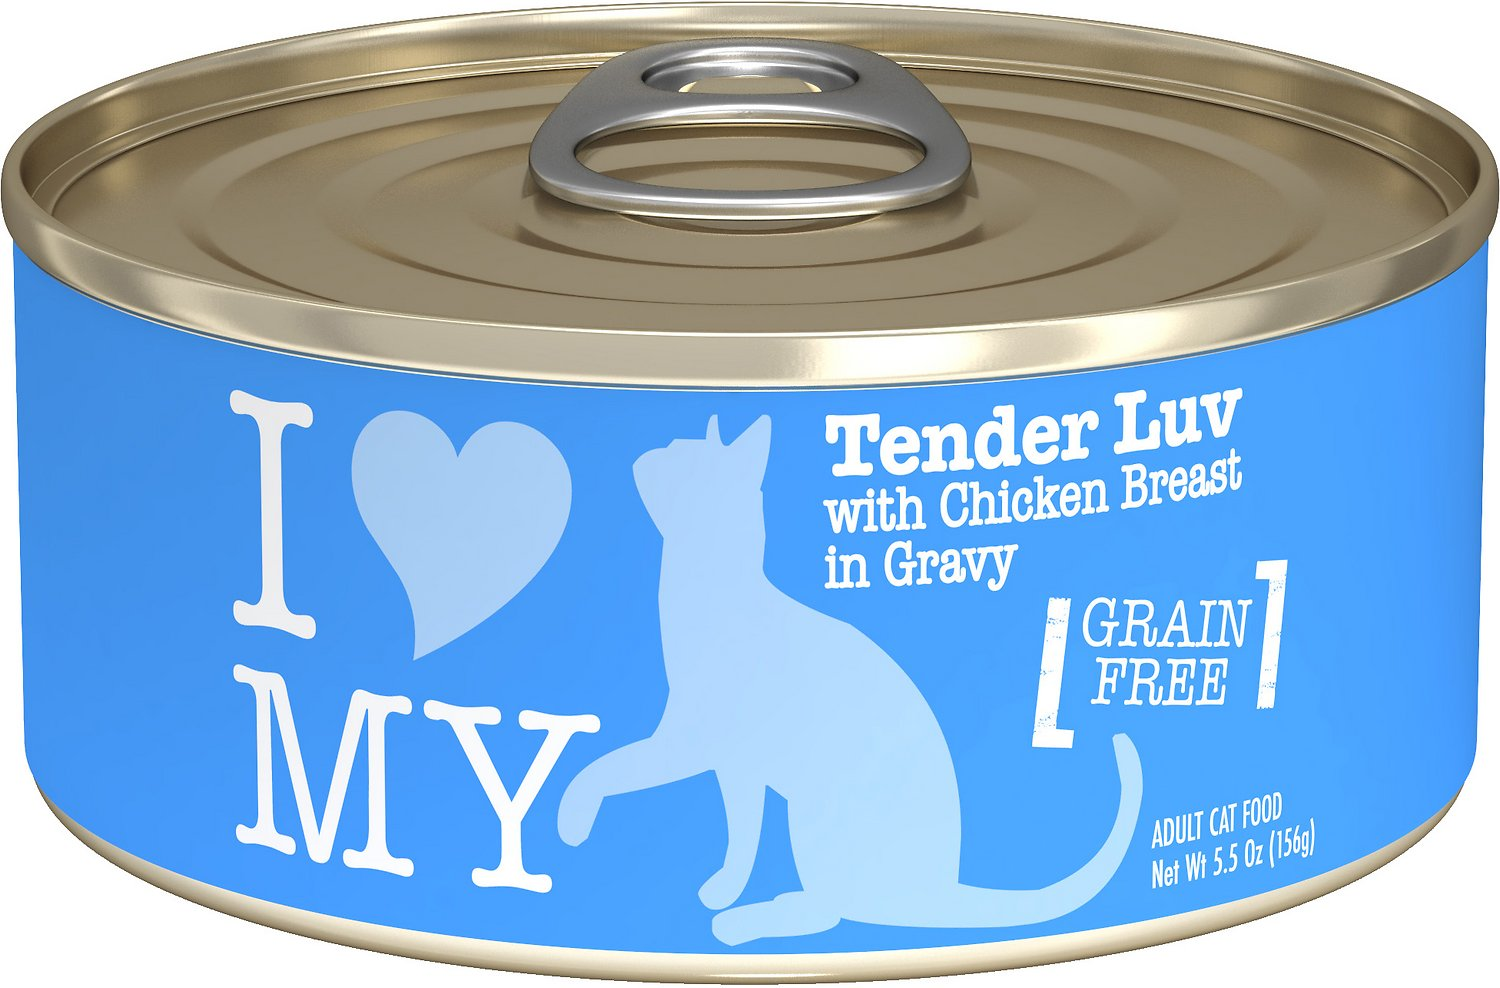 I Luv My Cat Canned Food